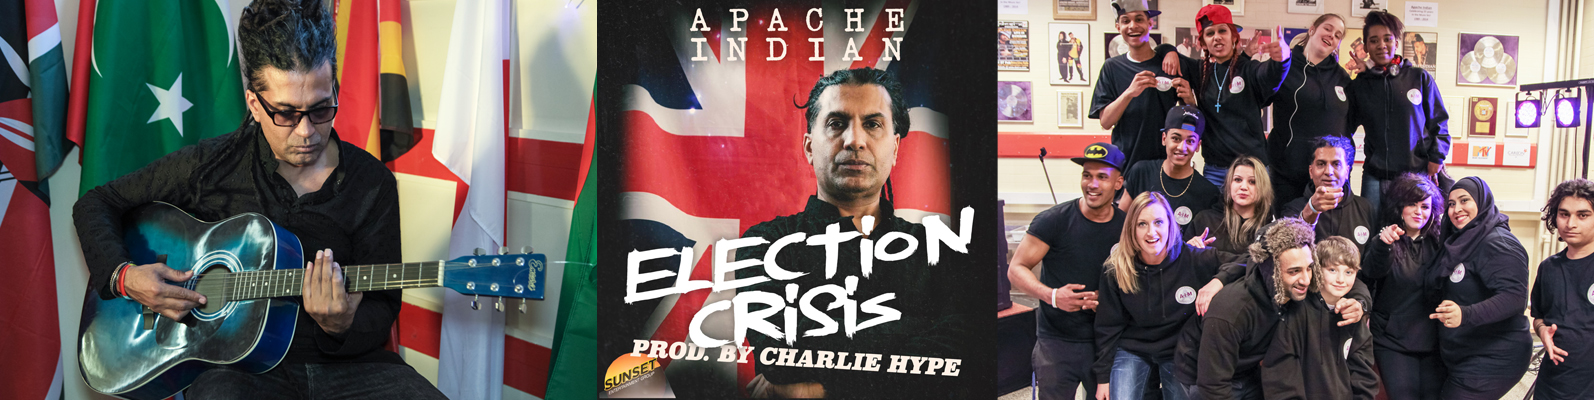 Apache Indian Blasts Establishment